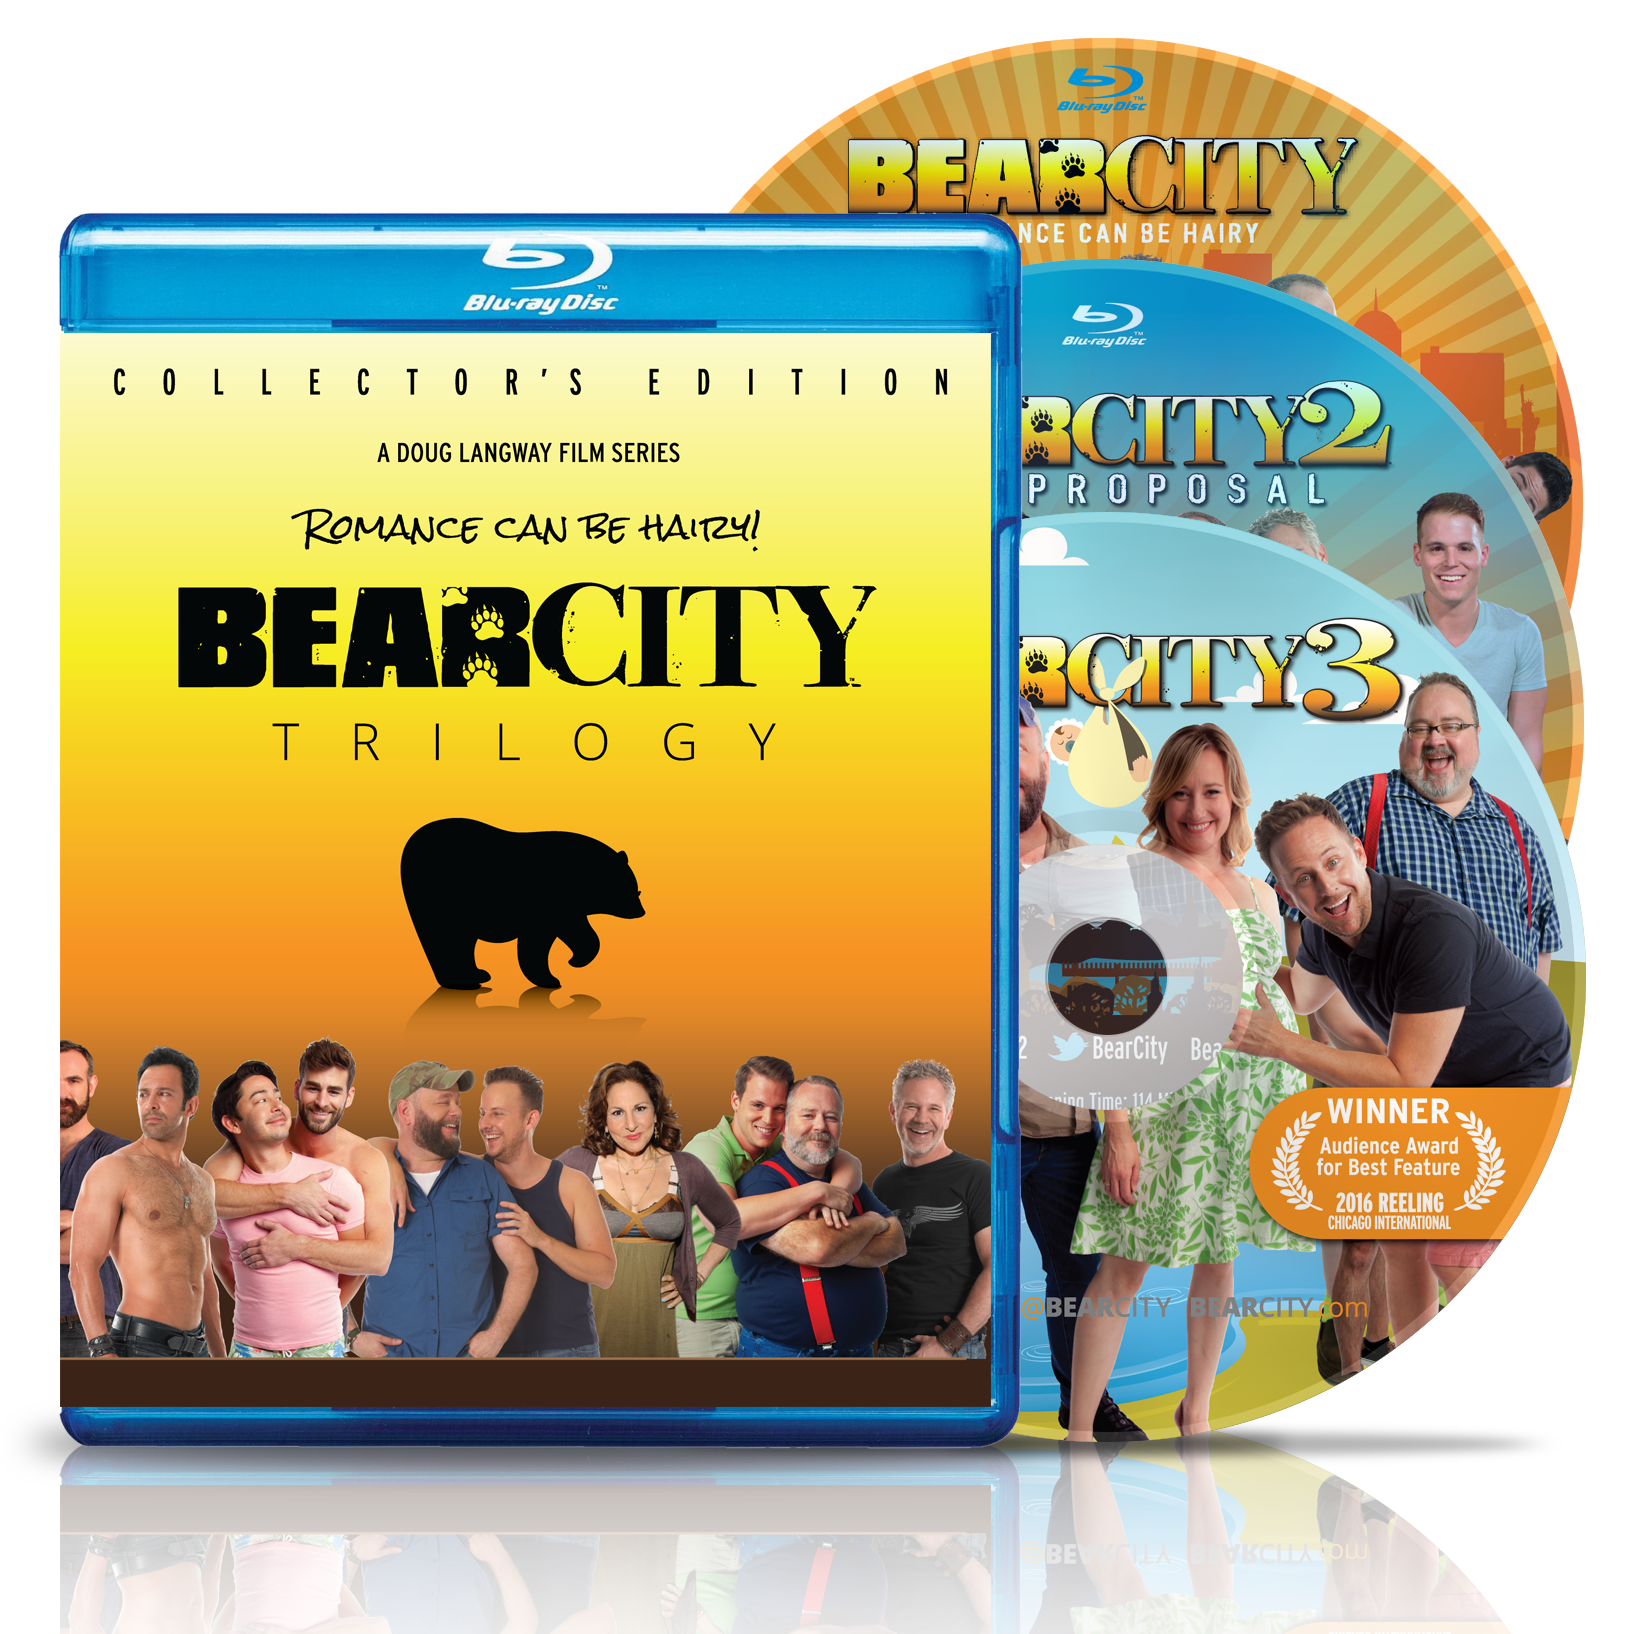 BEARCITY TRILOGY BLU-RAY Collector's Edition 3-Disc Set – Free Shipping!